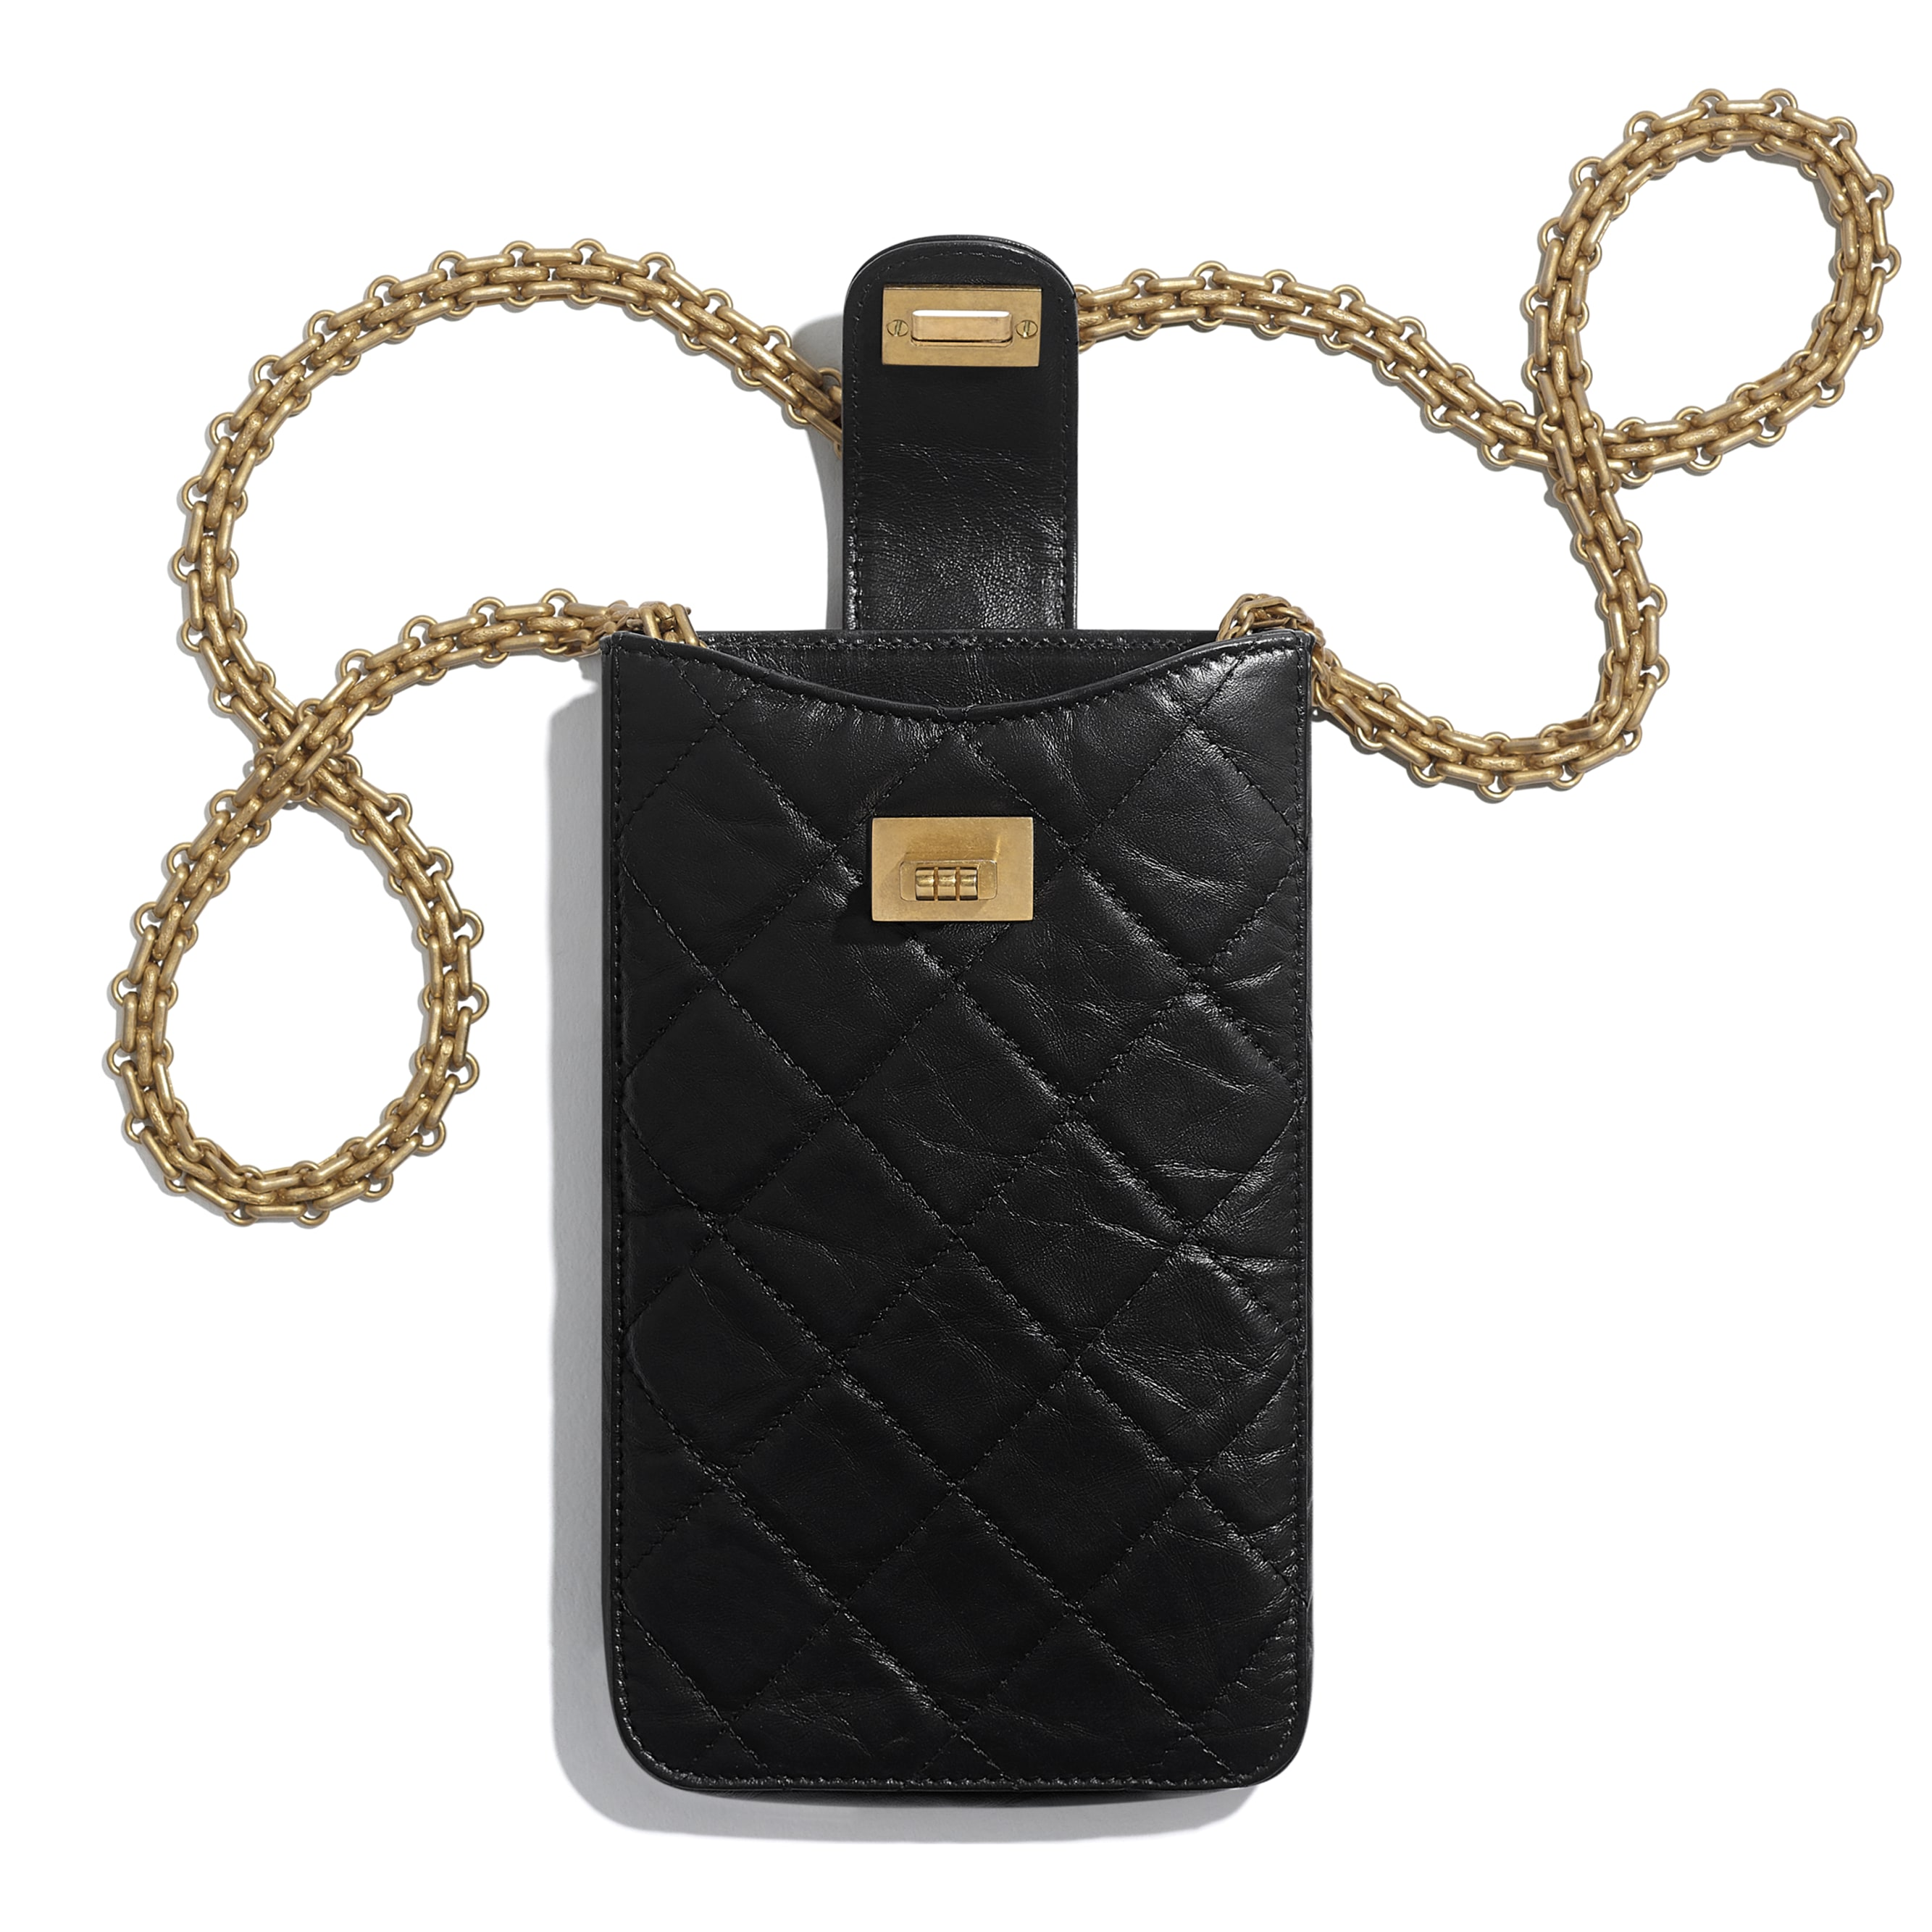 2.55 Phone Holder with Chain - Black - Aged Calfskin & Gold-Tone Metal - CHANEL - Other view - see standard sized version